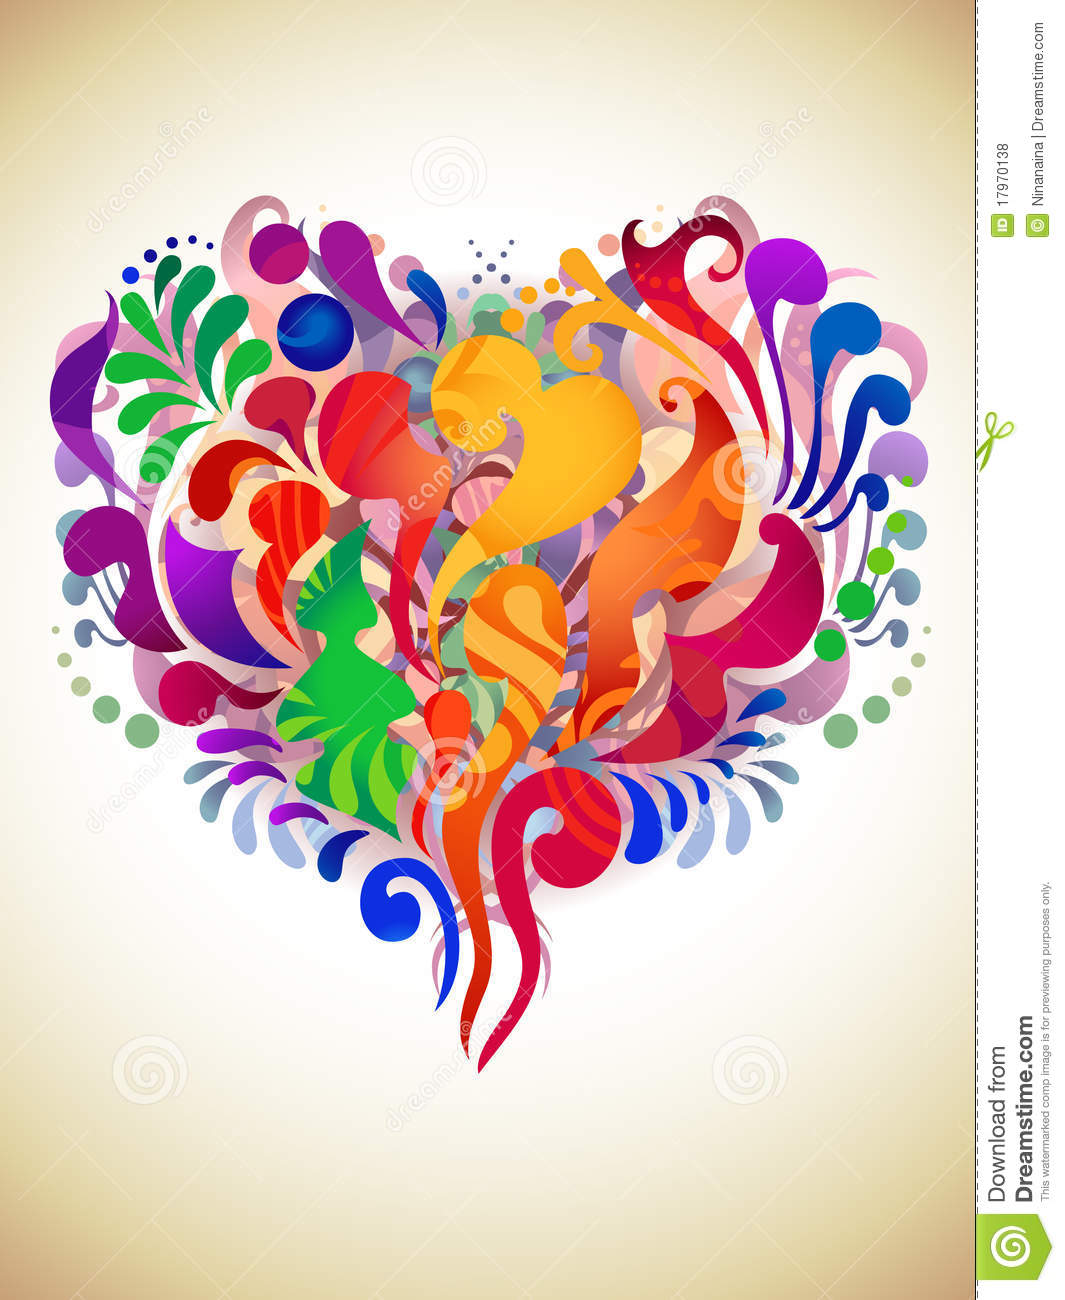 Abstract Heart Royalty Free Stock Photos - Image: 17970138